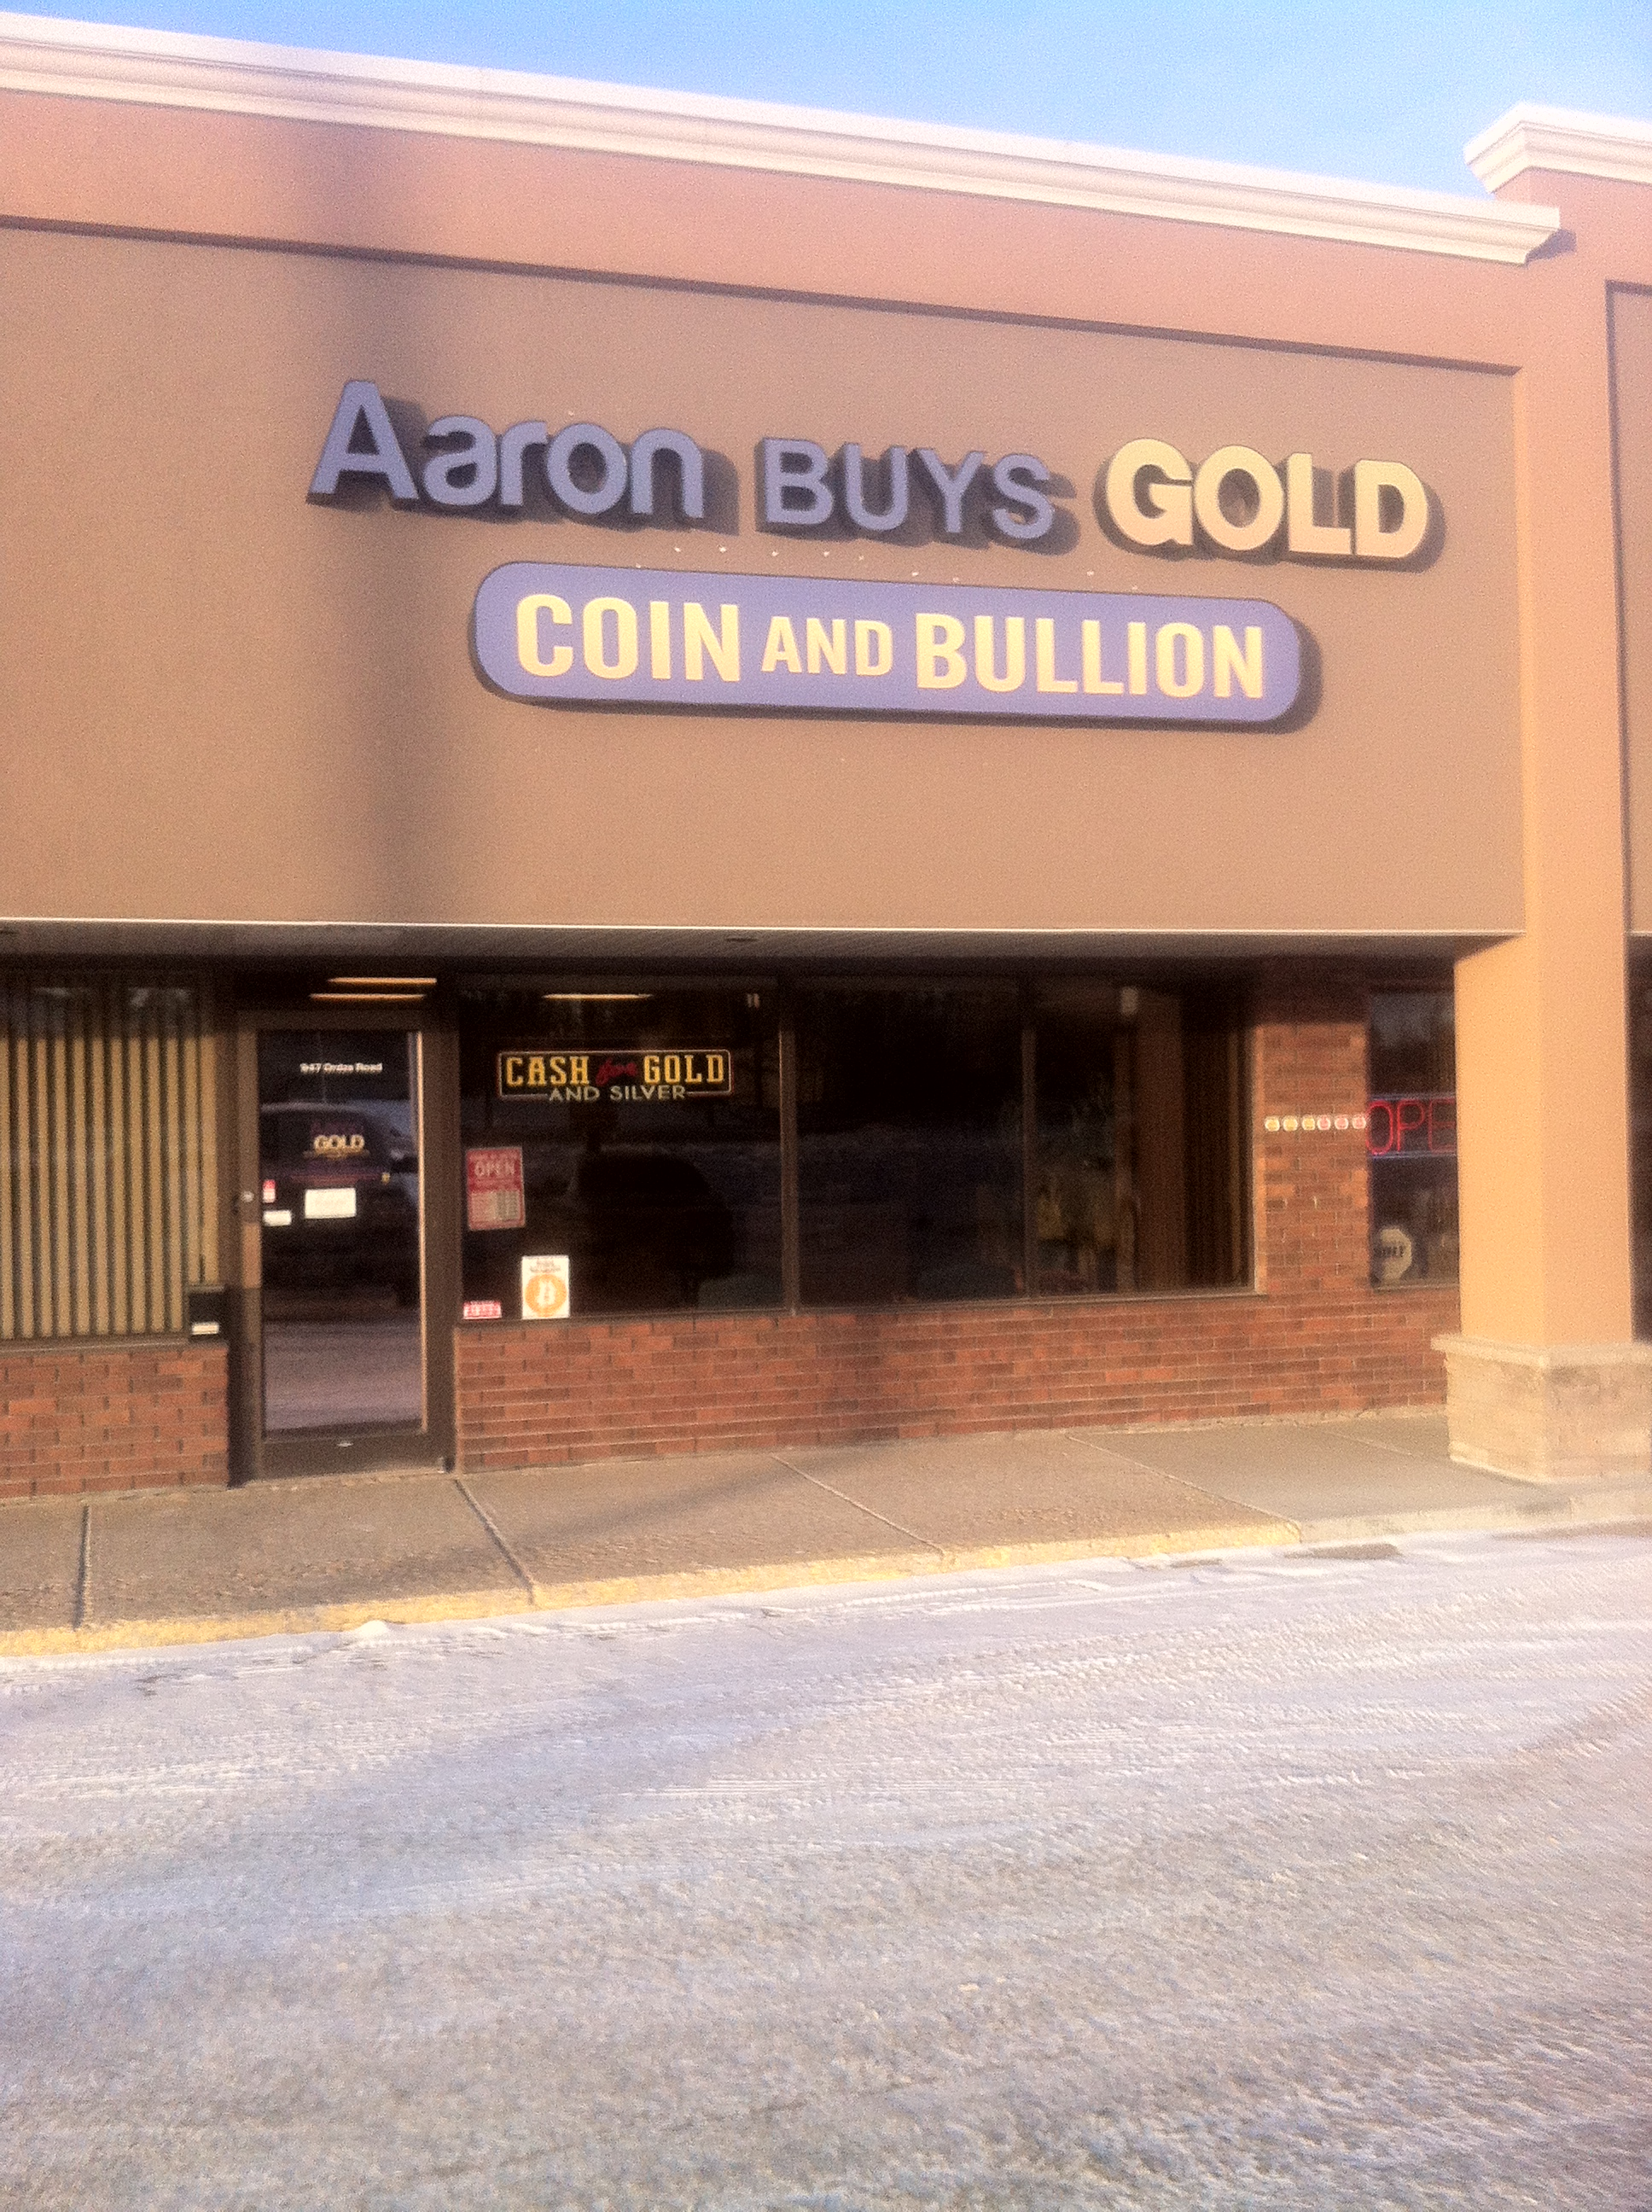 Aarons Buys Gold Ltd is a Gold, Silver, Platinum and Palladium bullion, coin and bars dealer in the Edmonton Area